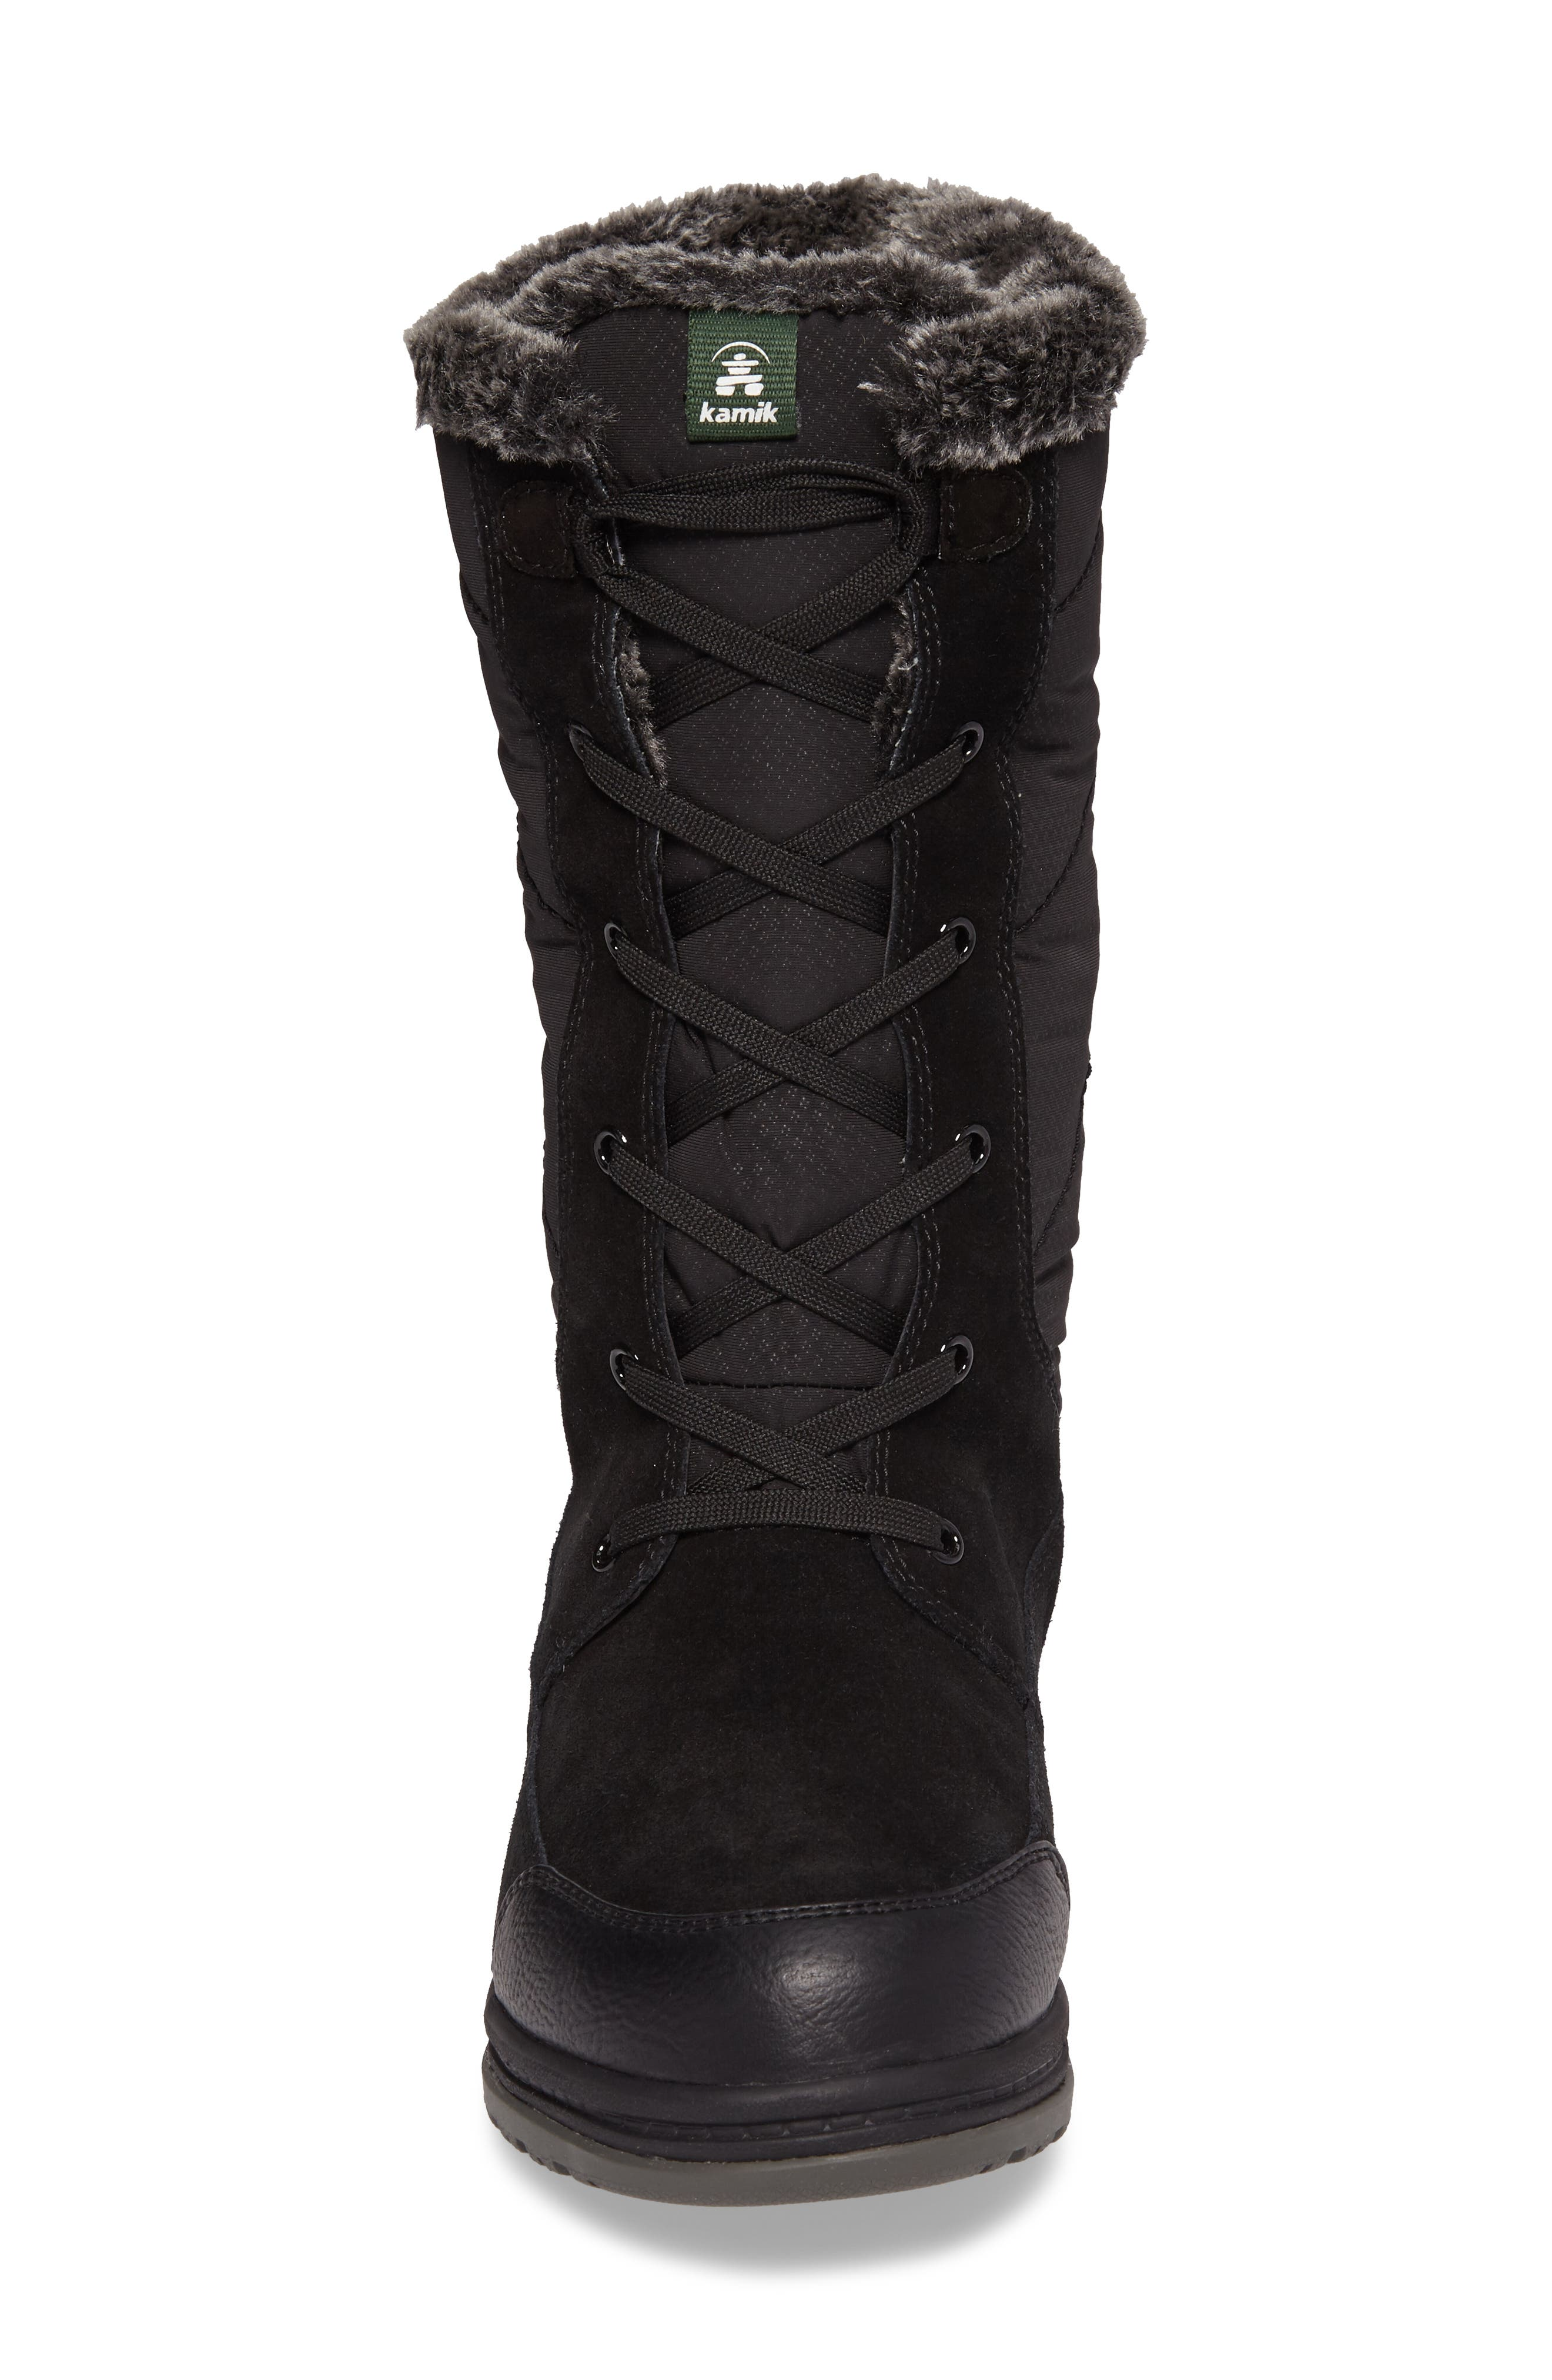 QuincyS Waterproof Boot,                             Alternate thumbnail 4, color,                             Black Fabric